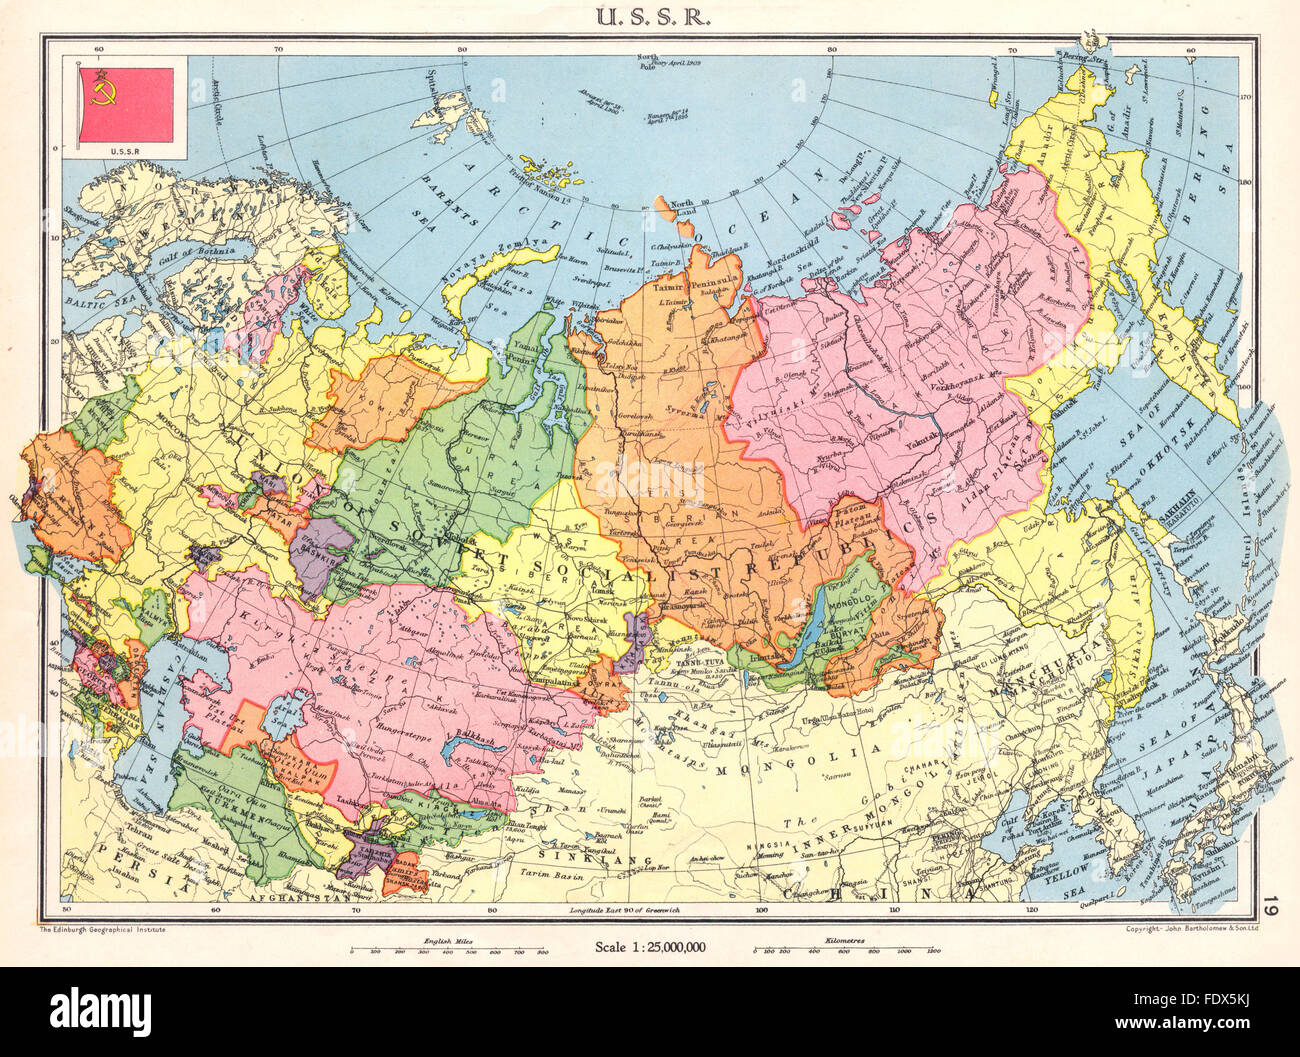 Ussr map republics of the soviet union wikipedia px ussr russia u s s r soviet union vintage map stock photo gumiabroncs Choice Image